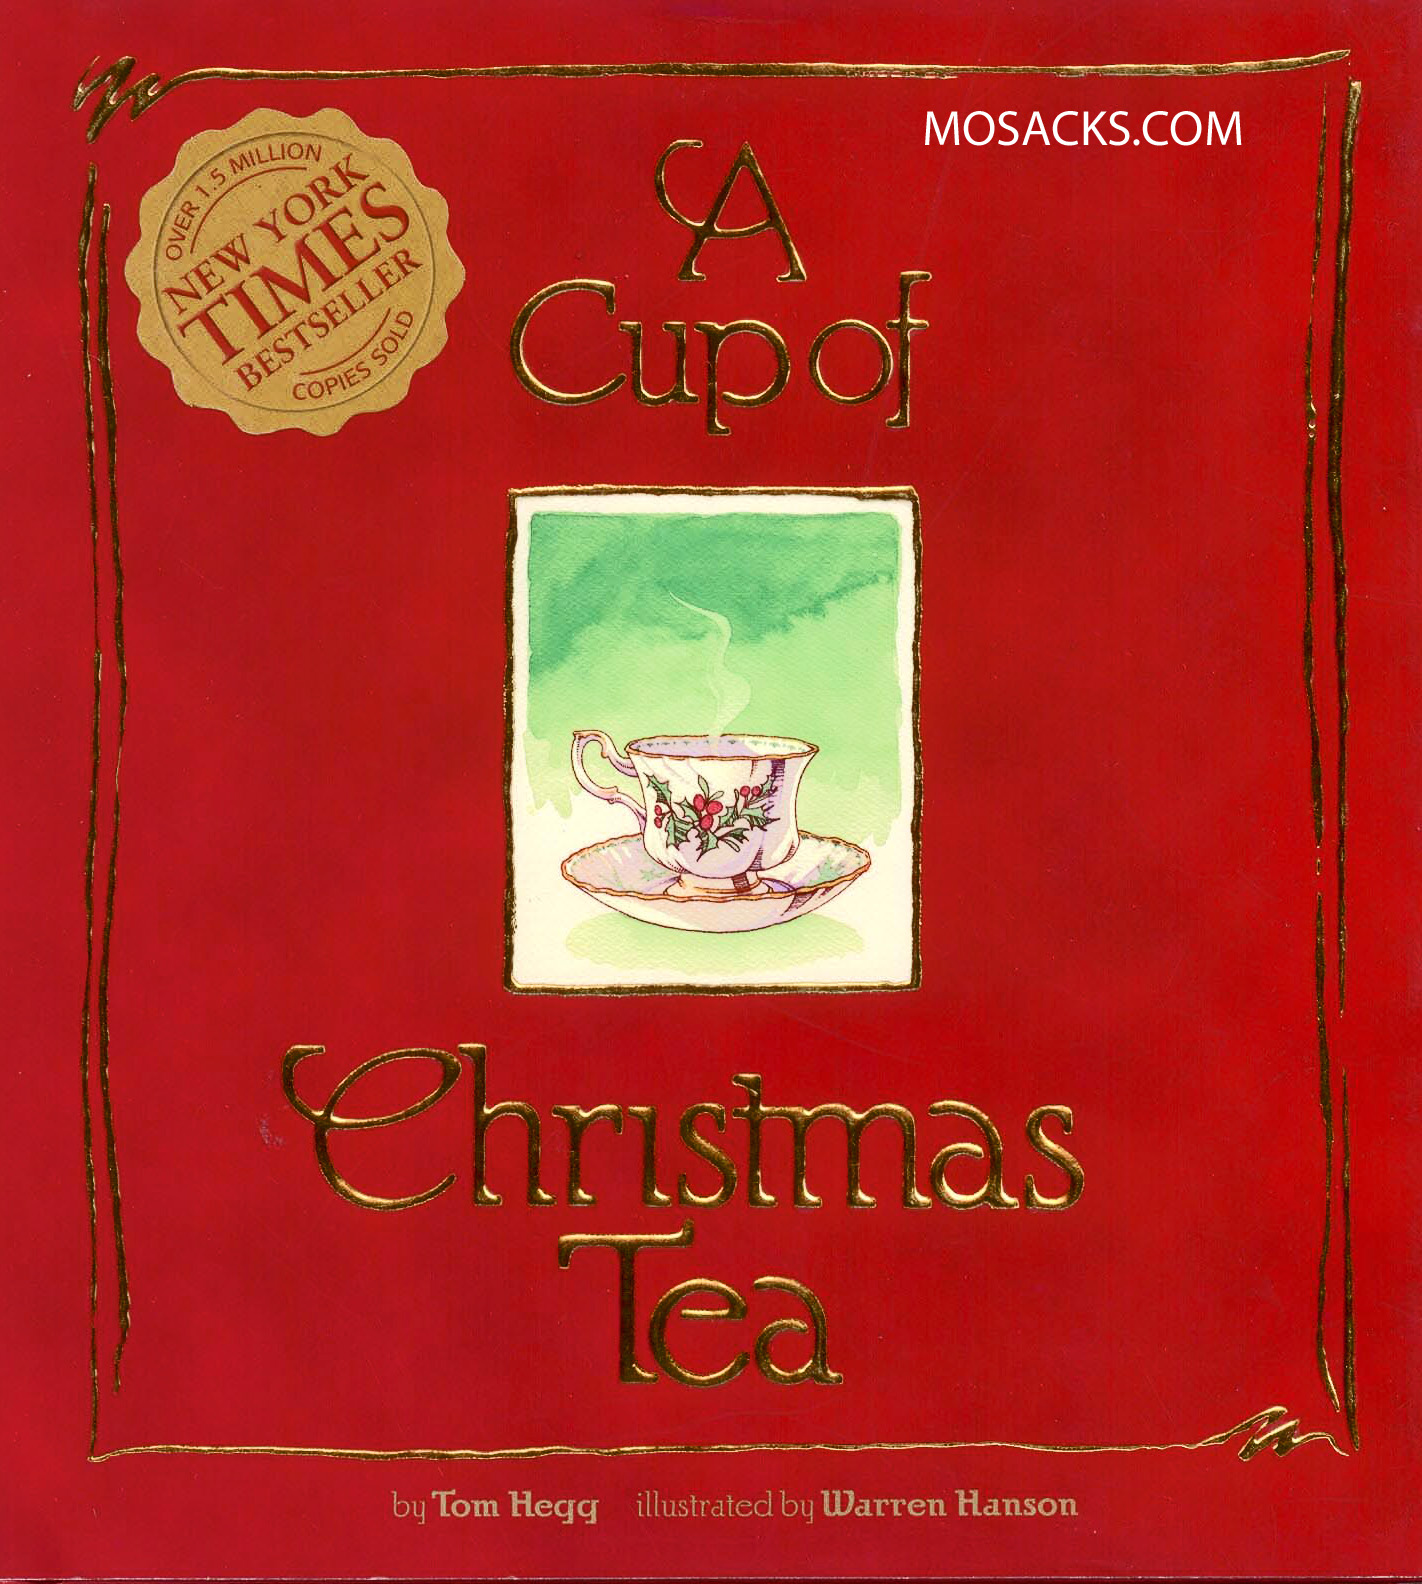 A Cup of Christmas Tea by Tom Hegg